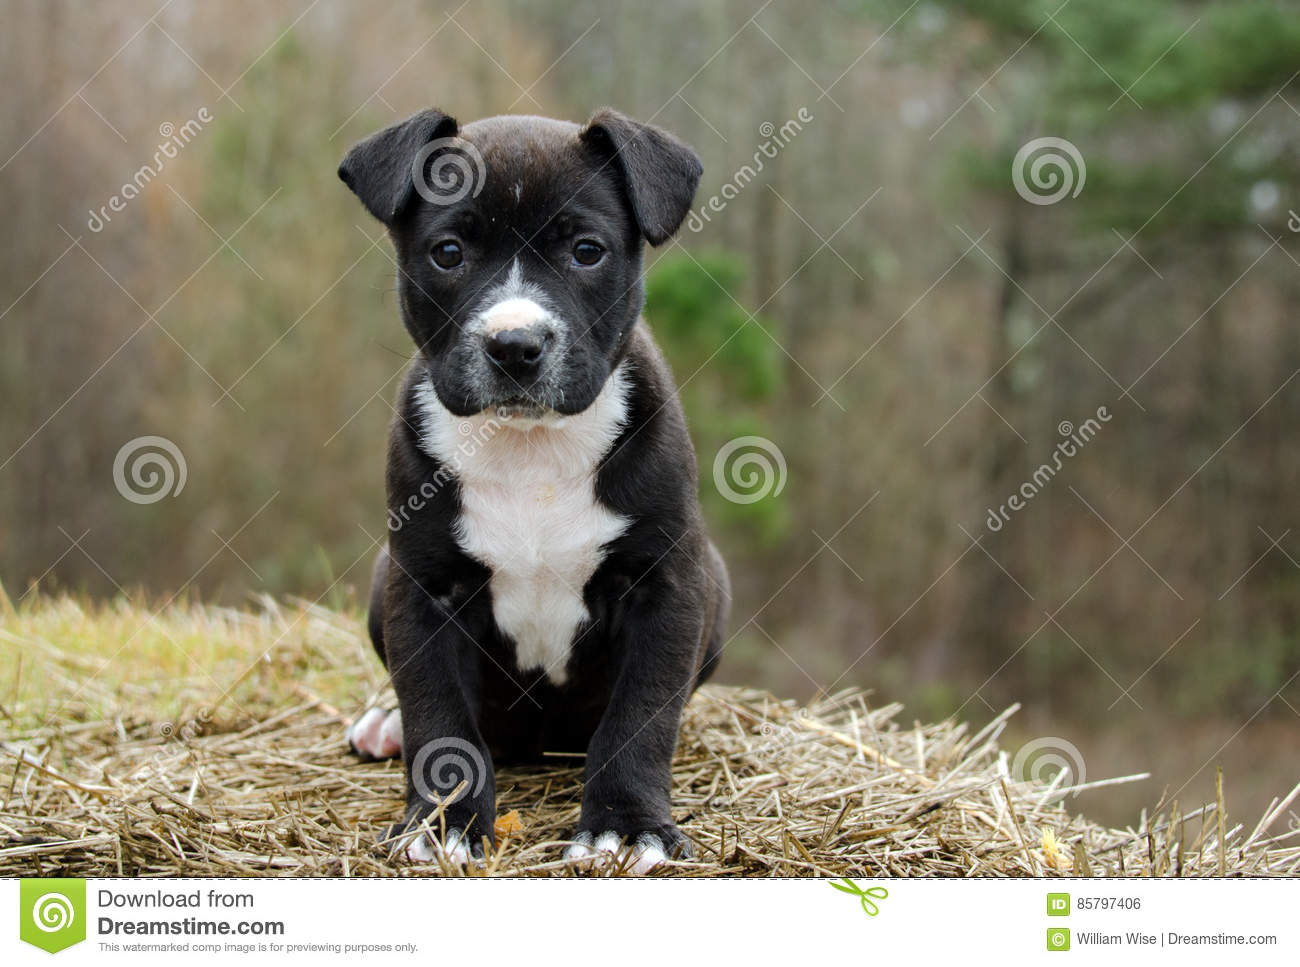 Black And White Mixed Breed Puppy Dog Stock Photo Image Of Puppies